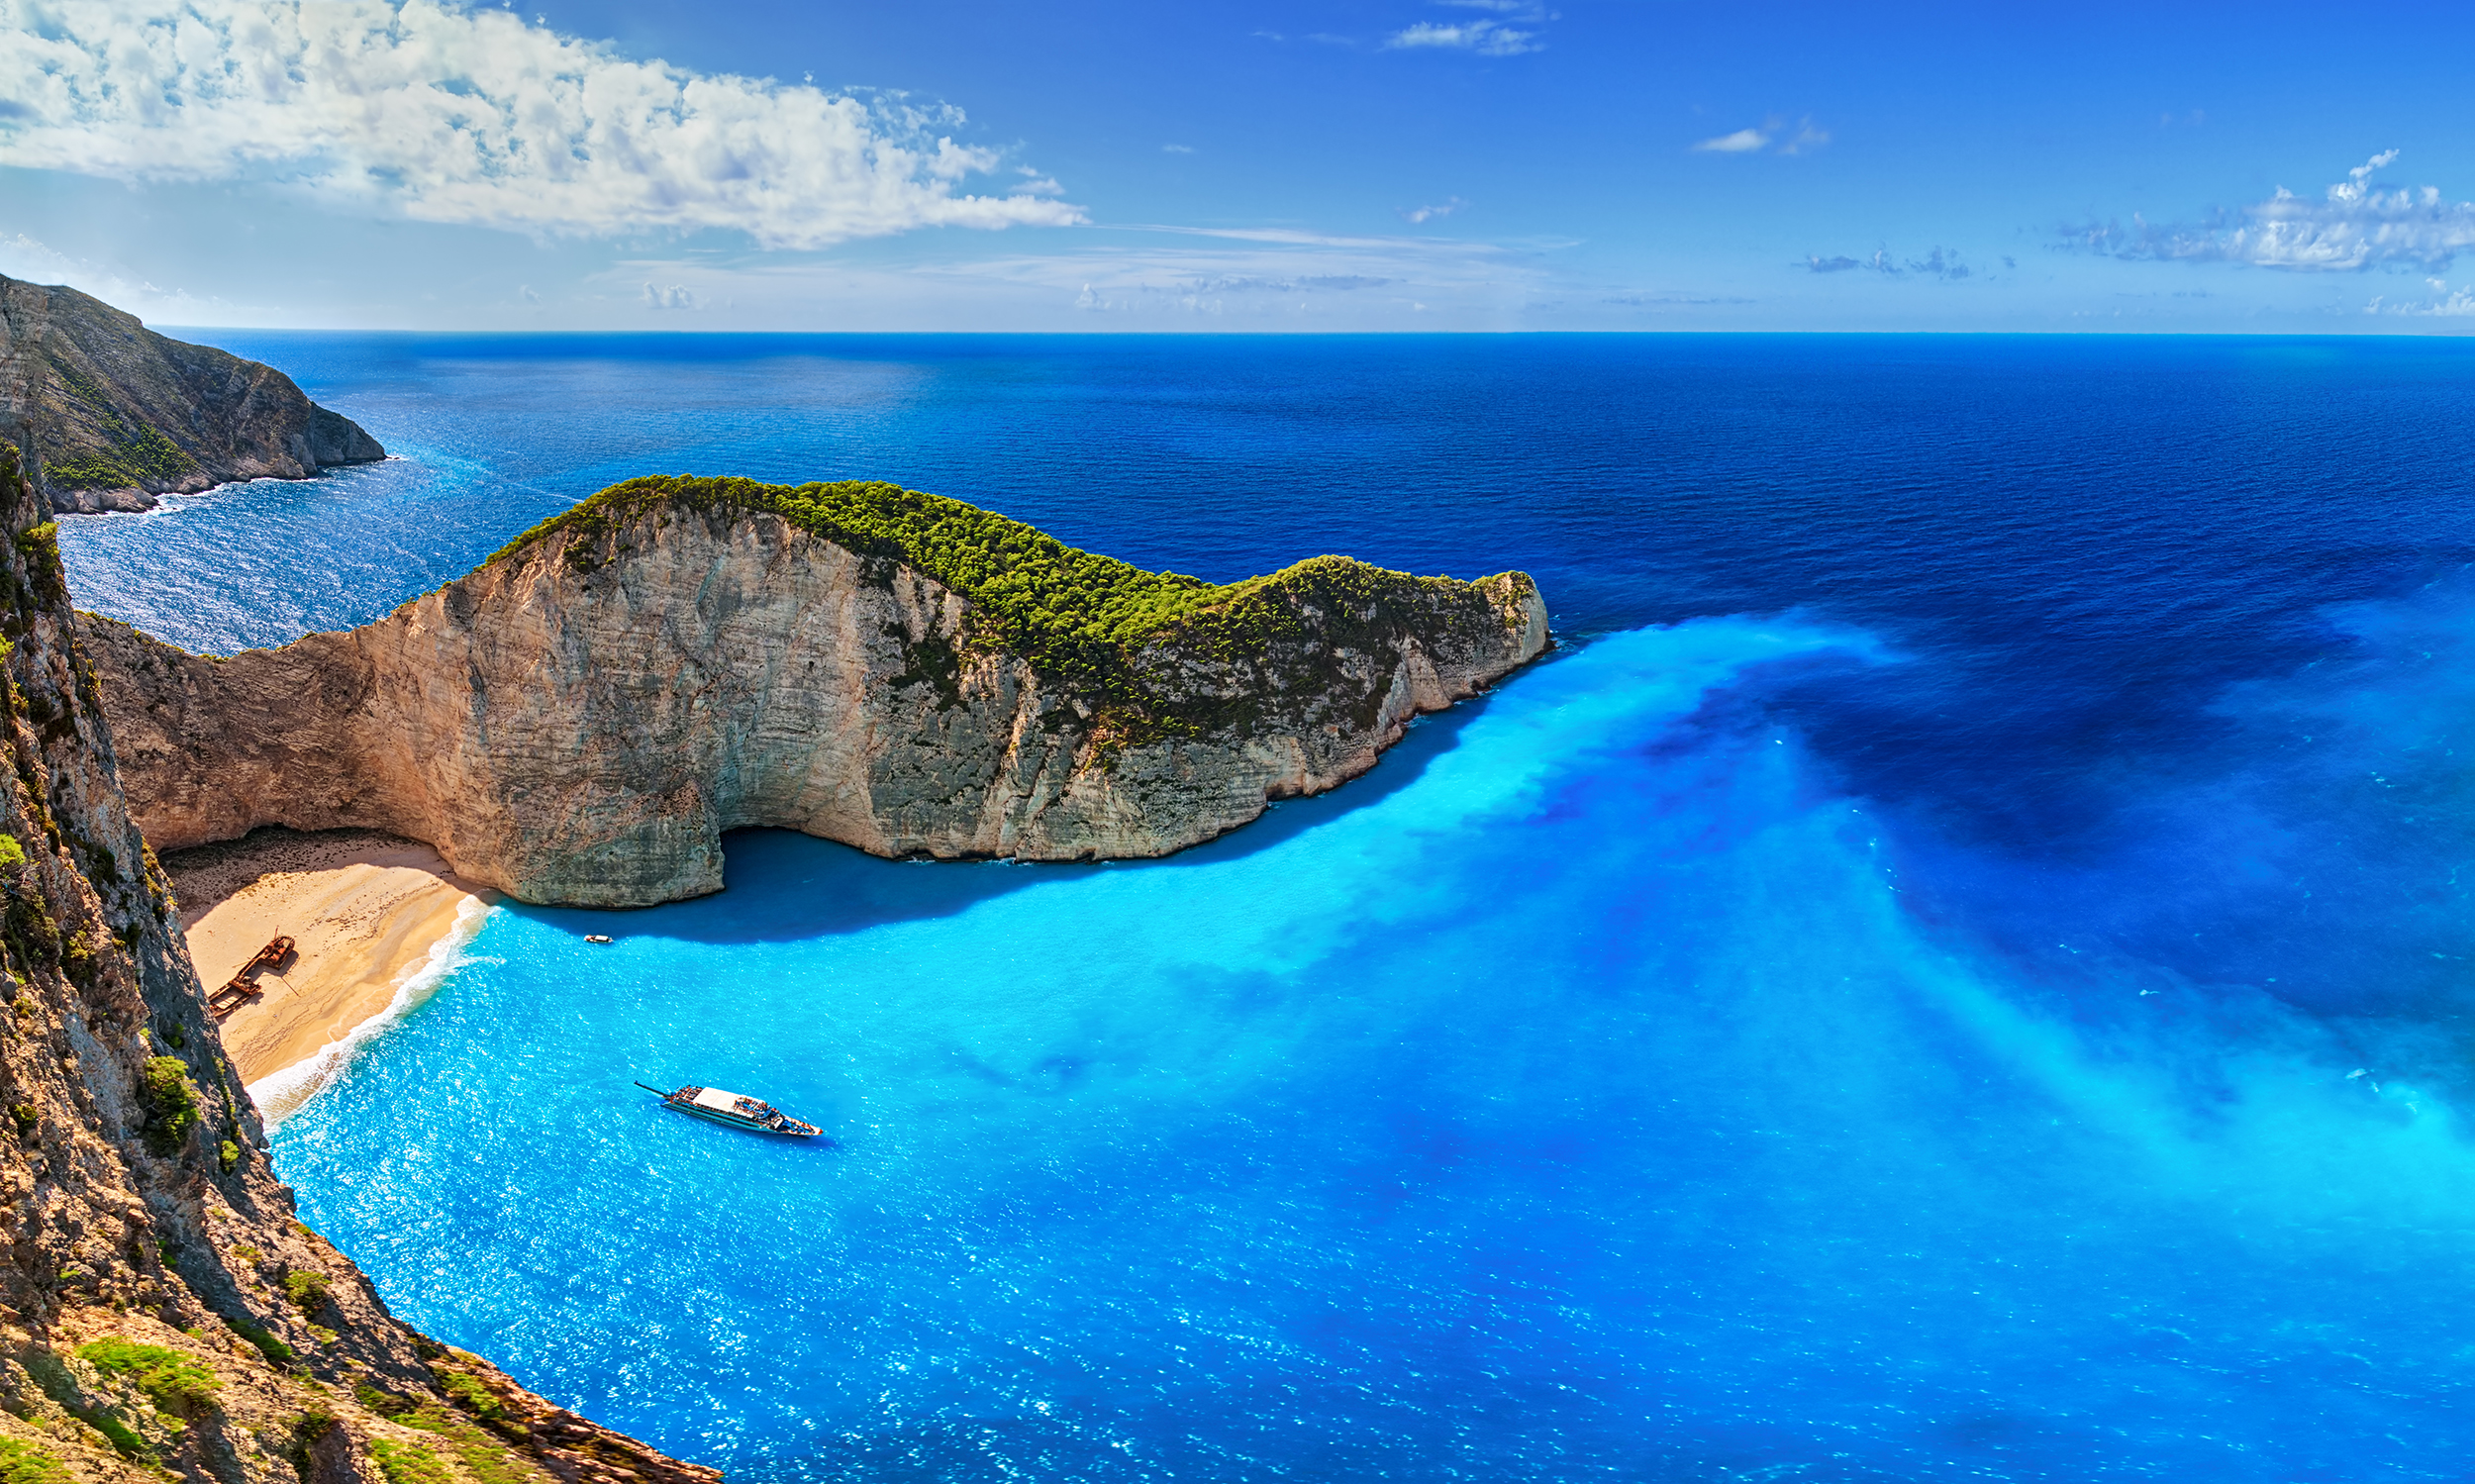 Panorama of Navagio Beach (Shipwreck Beach), Zakynthos island, Greece.